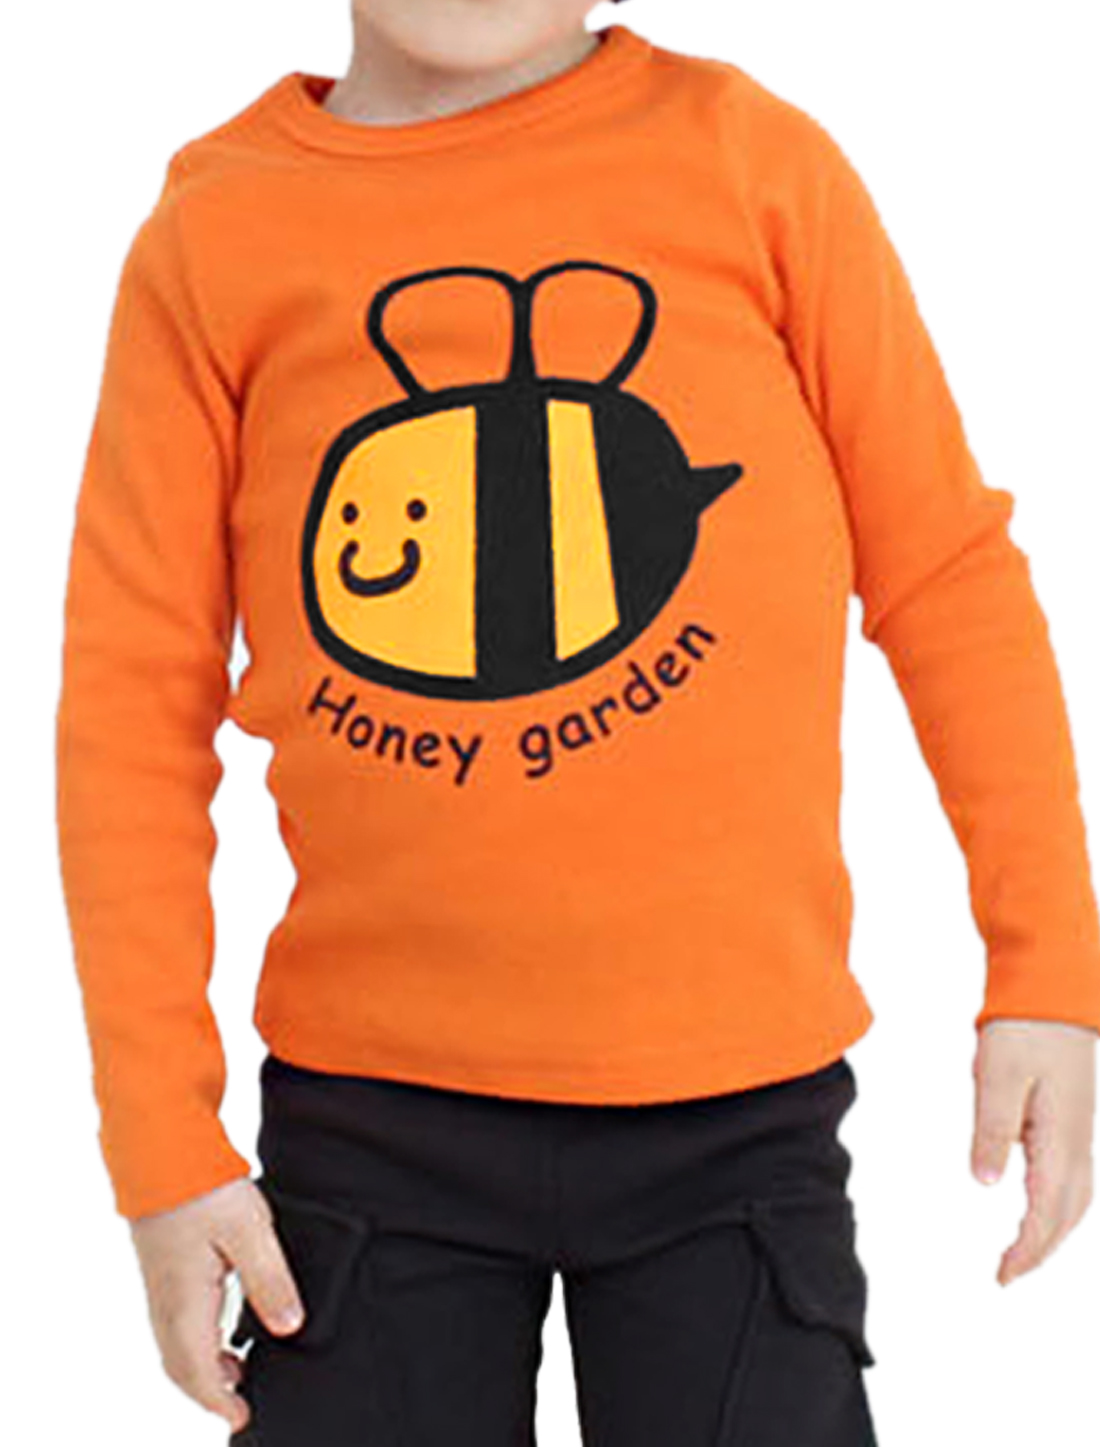 Causal Pullover Long Sleeve Bee Letters Pattern Orange T-Shirt US Size 6 for Boys